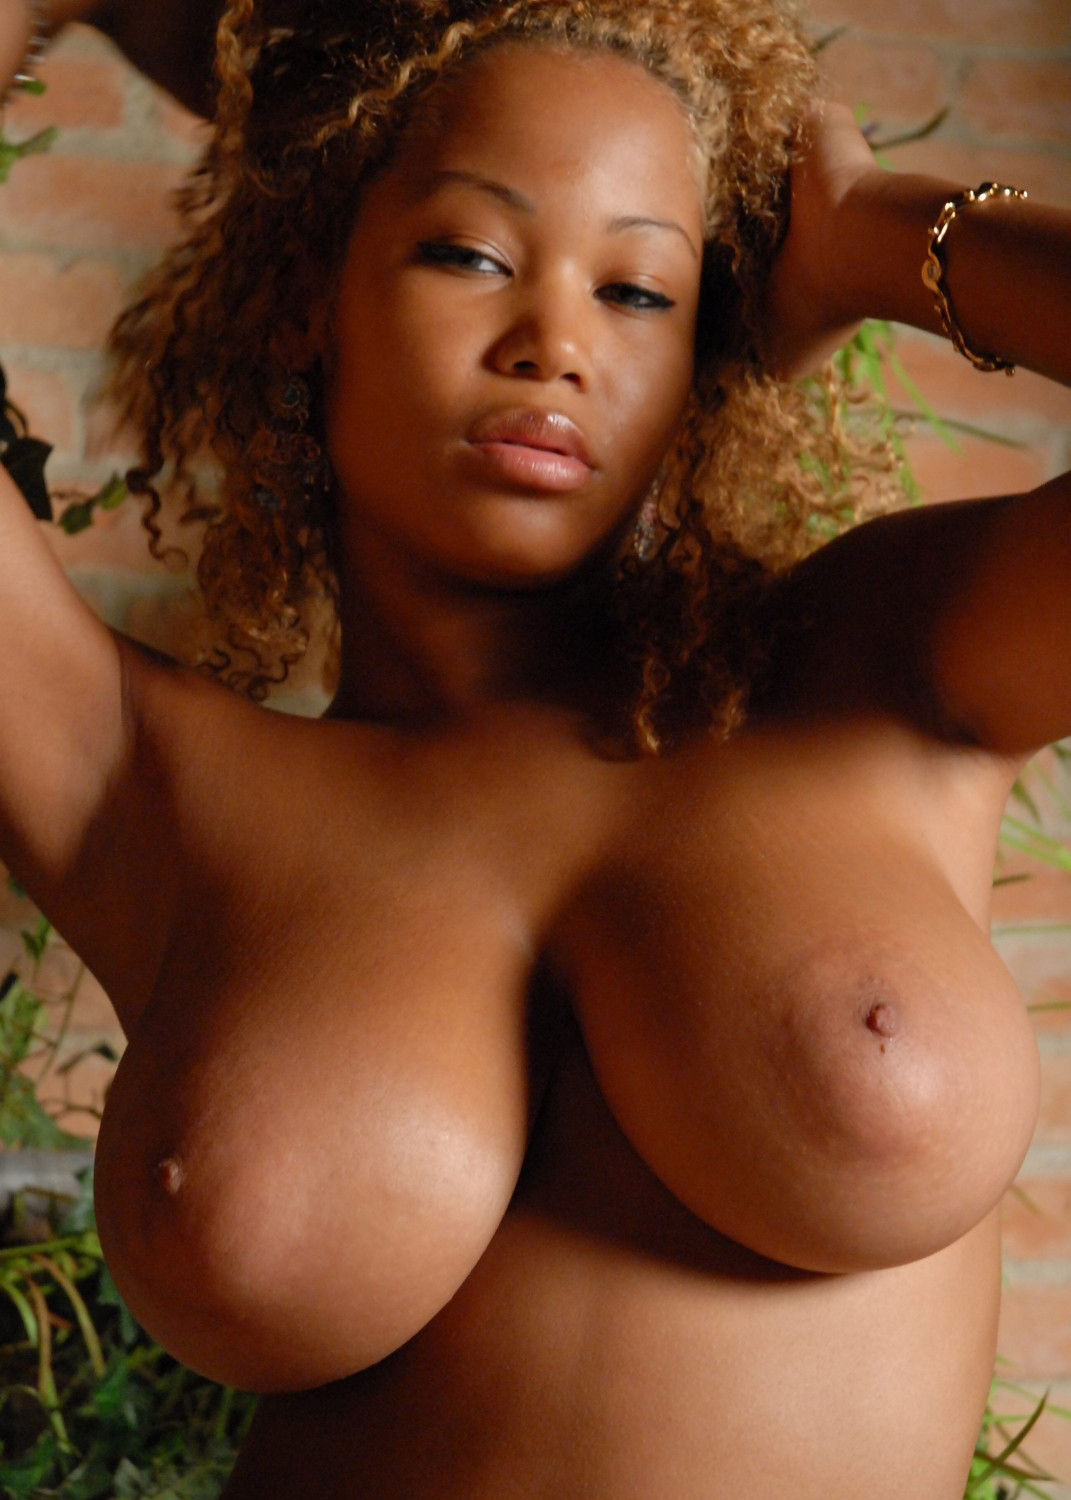 Big boobs pics with nude black girls